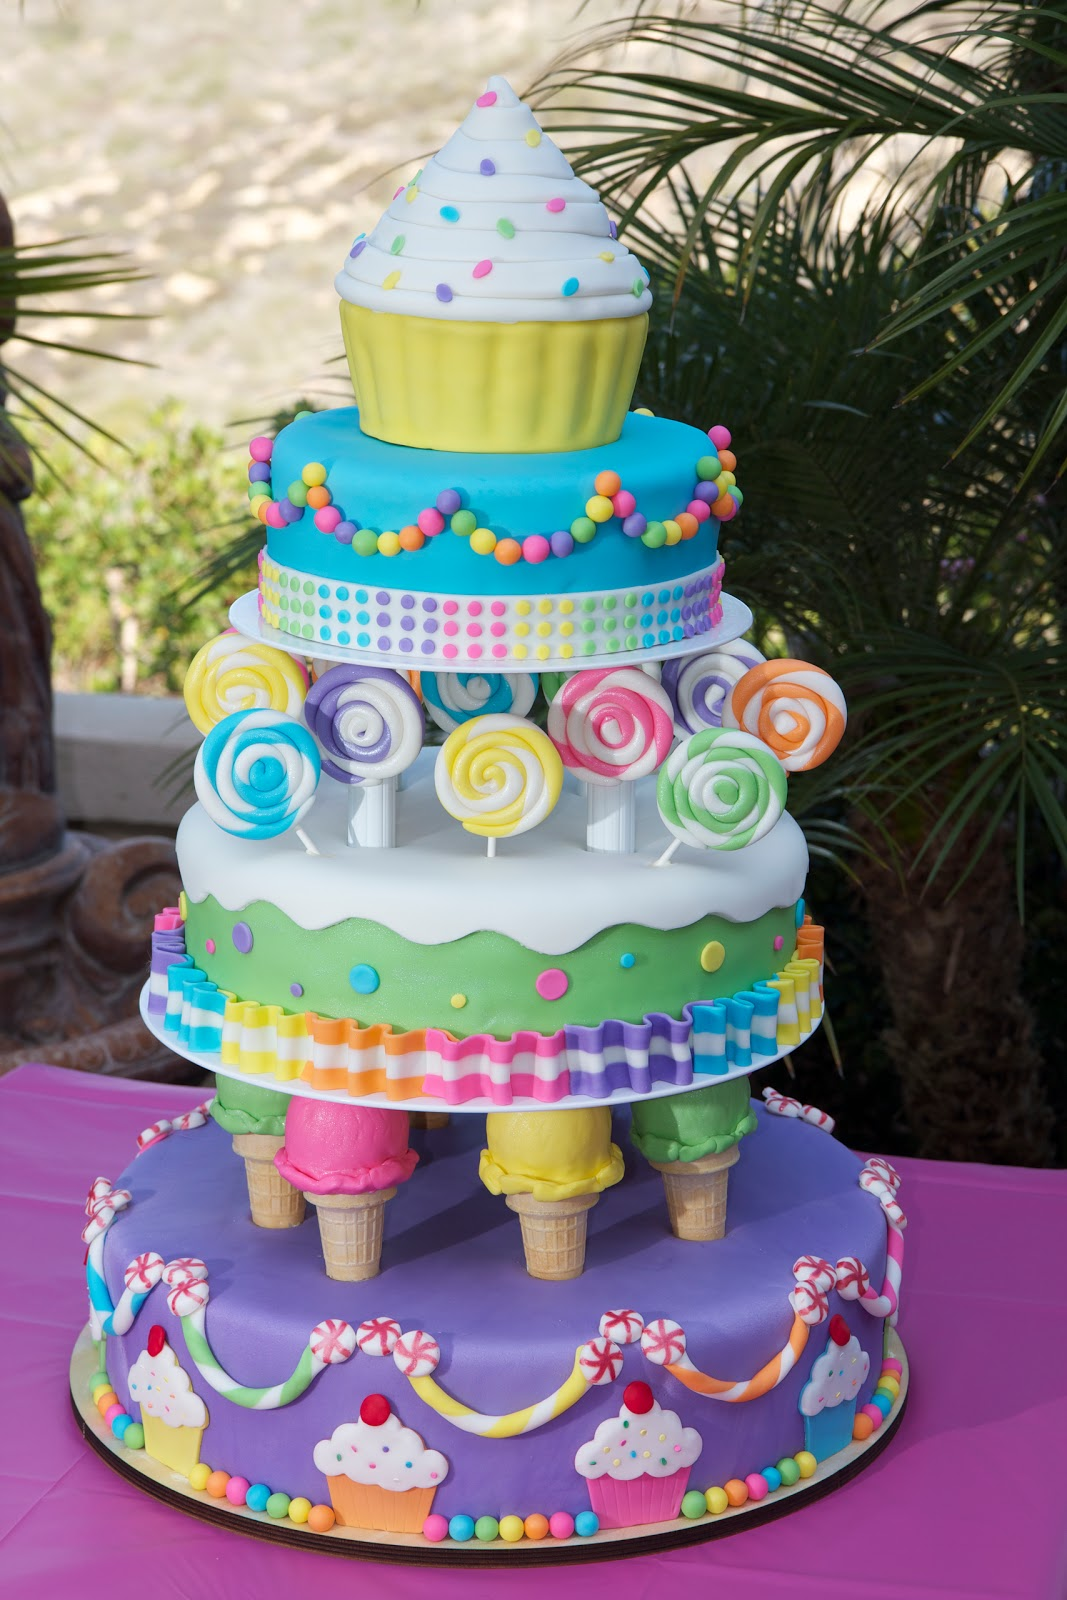 Cake Theme For Birthday : Kaylynn Cakes: Large Candyland themed Birthday Cake